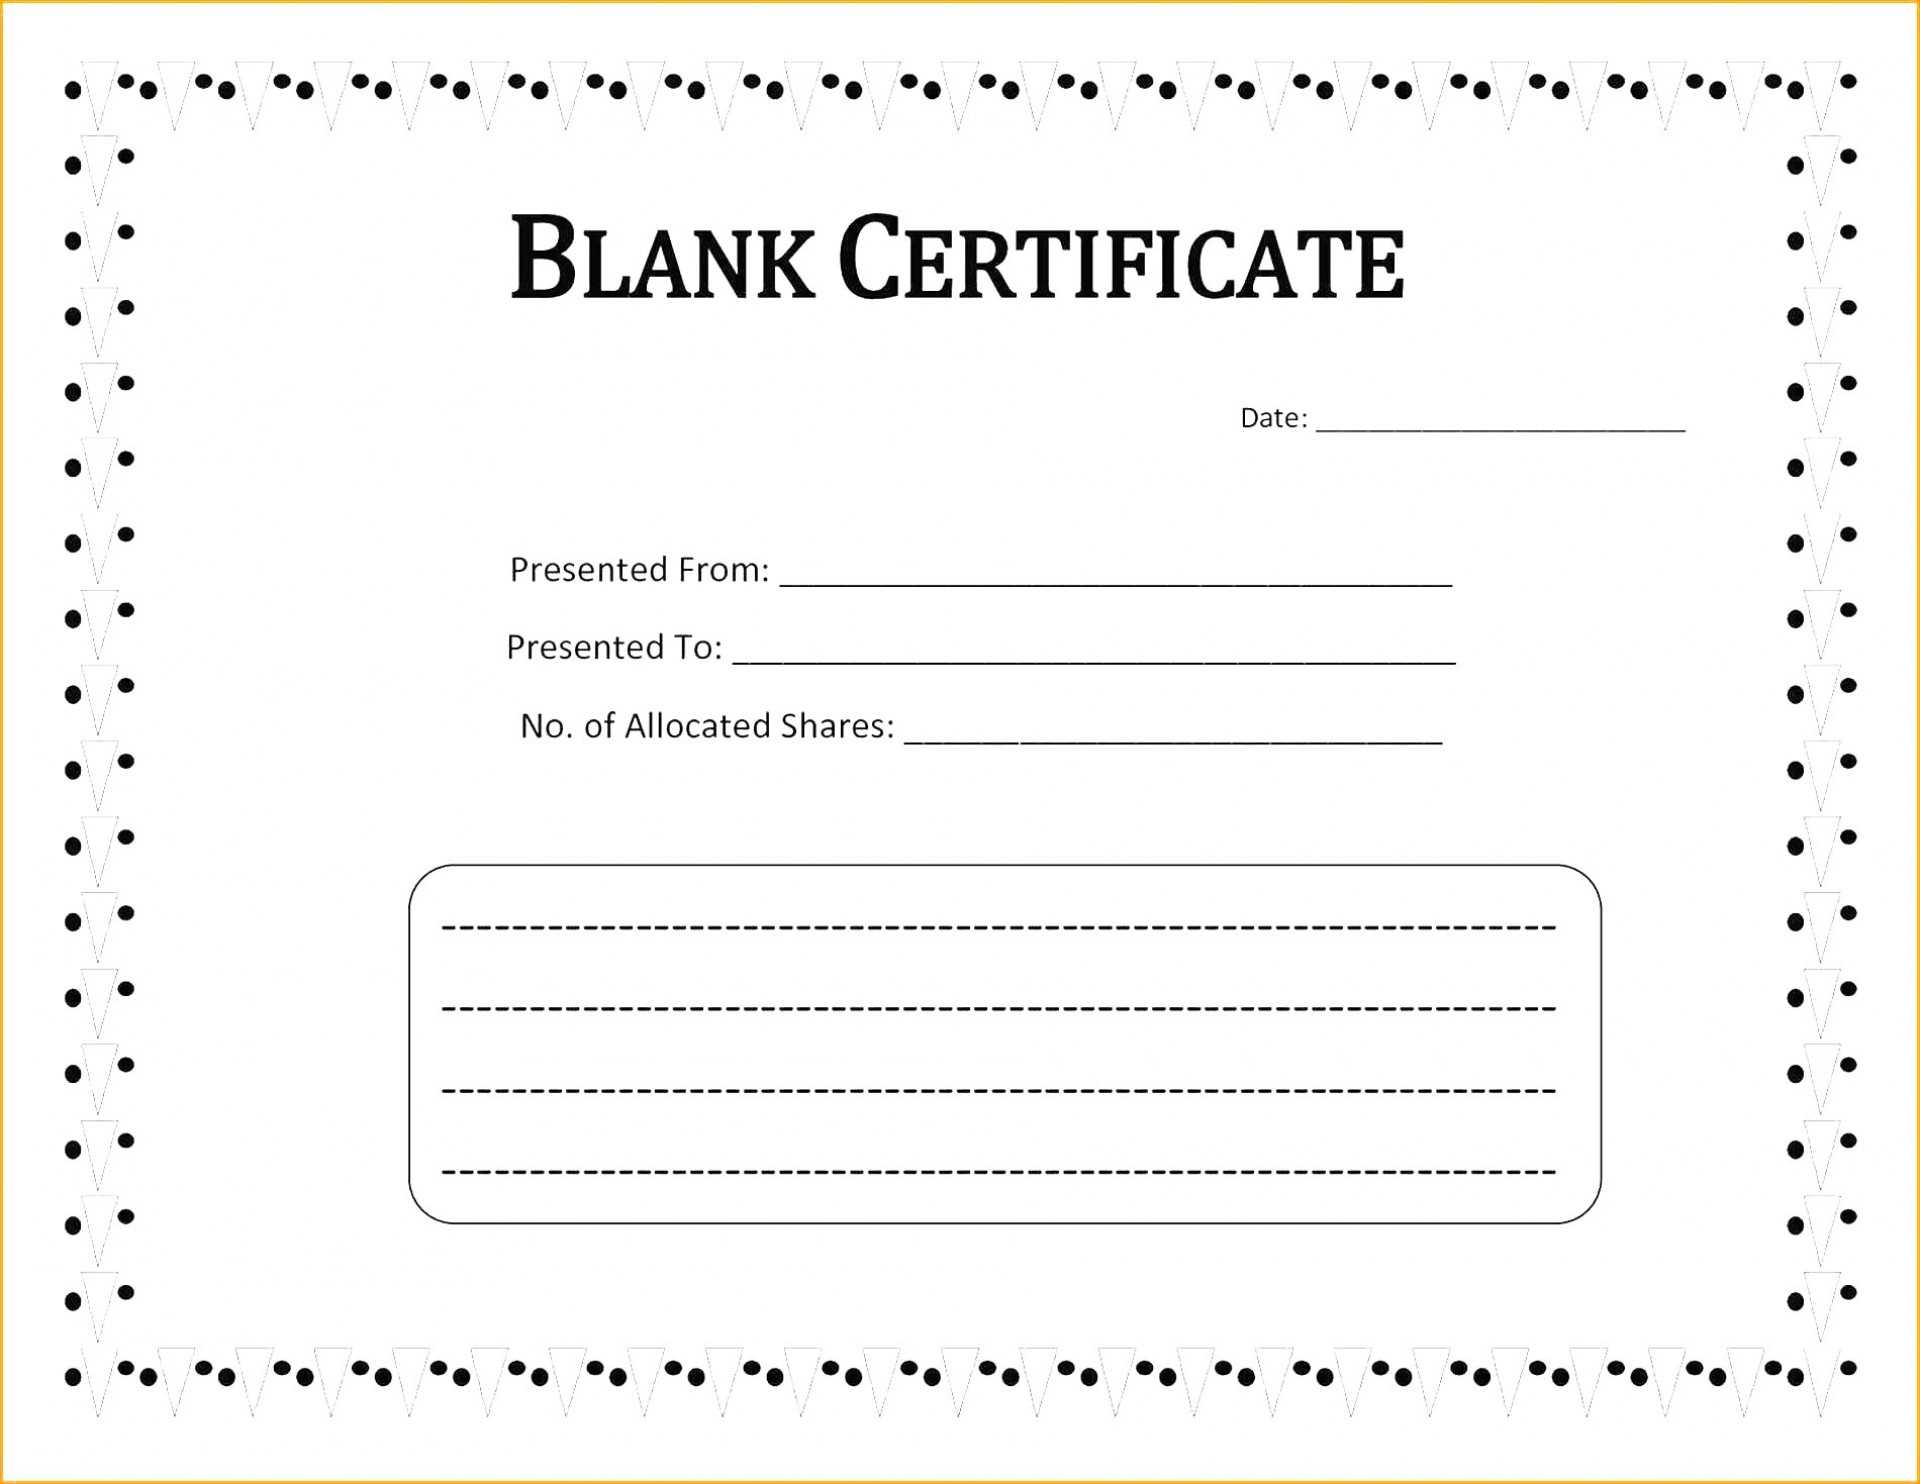 033 Certificate Template Doc Free Word Document Experience Throughout Birth Certificate Fake Template